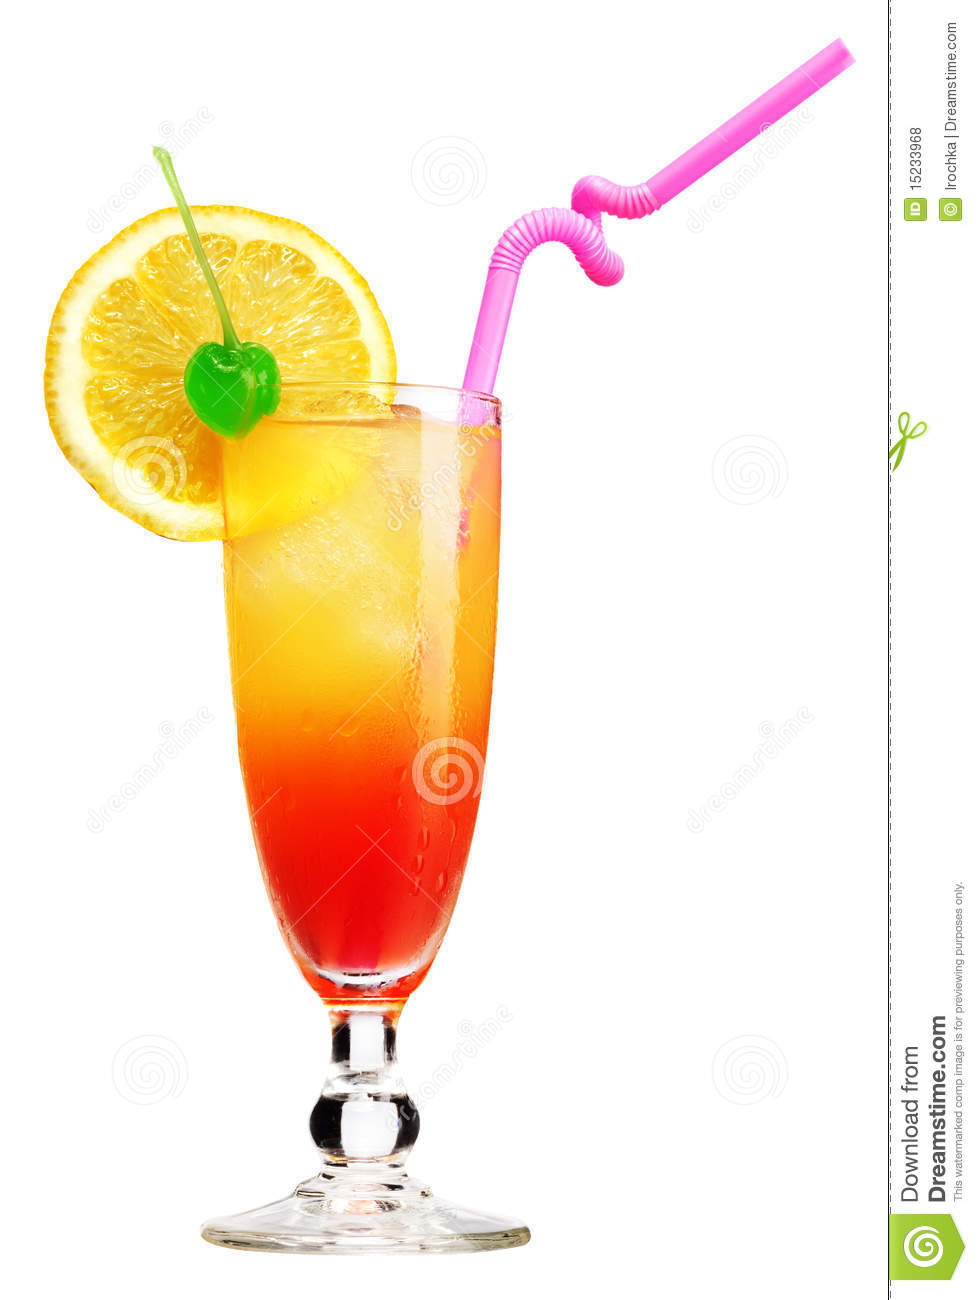 Tequila sunrise cocktail royalty free stock photos image for Best tequila for tequila sunrise